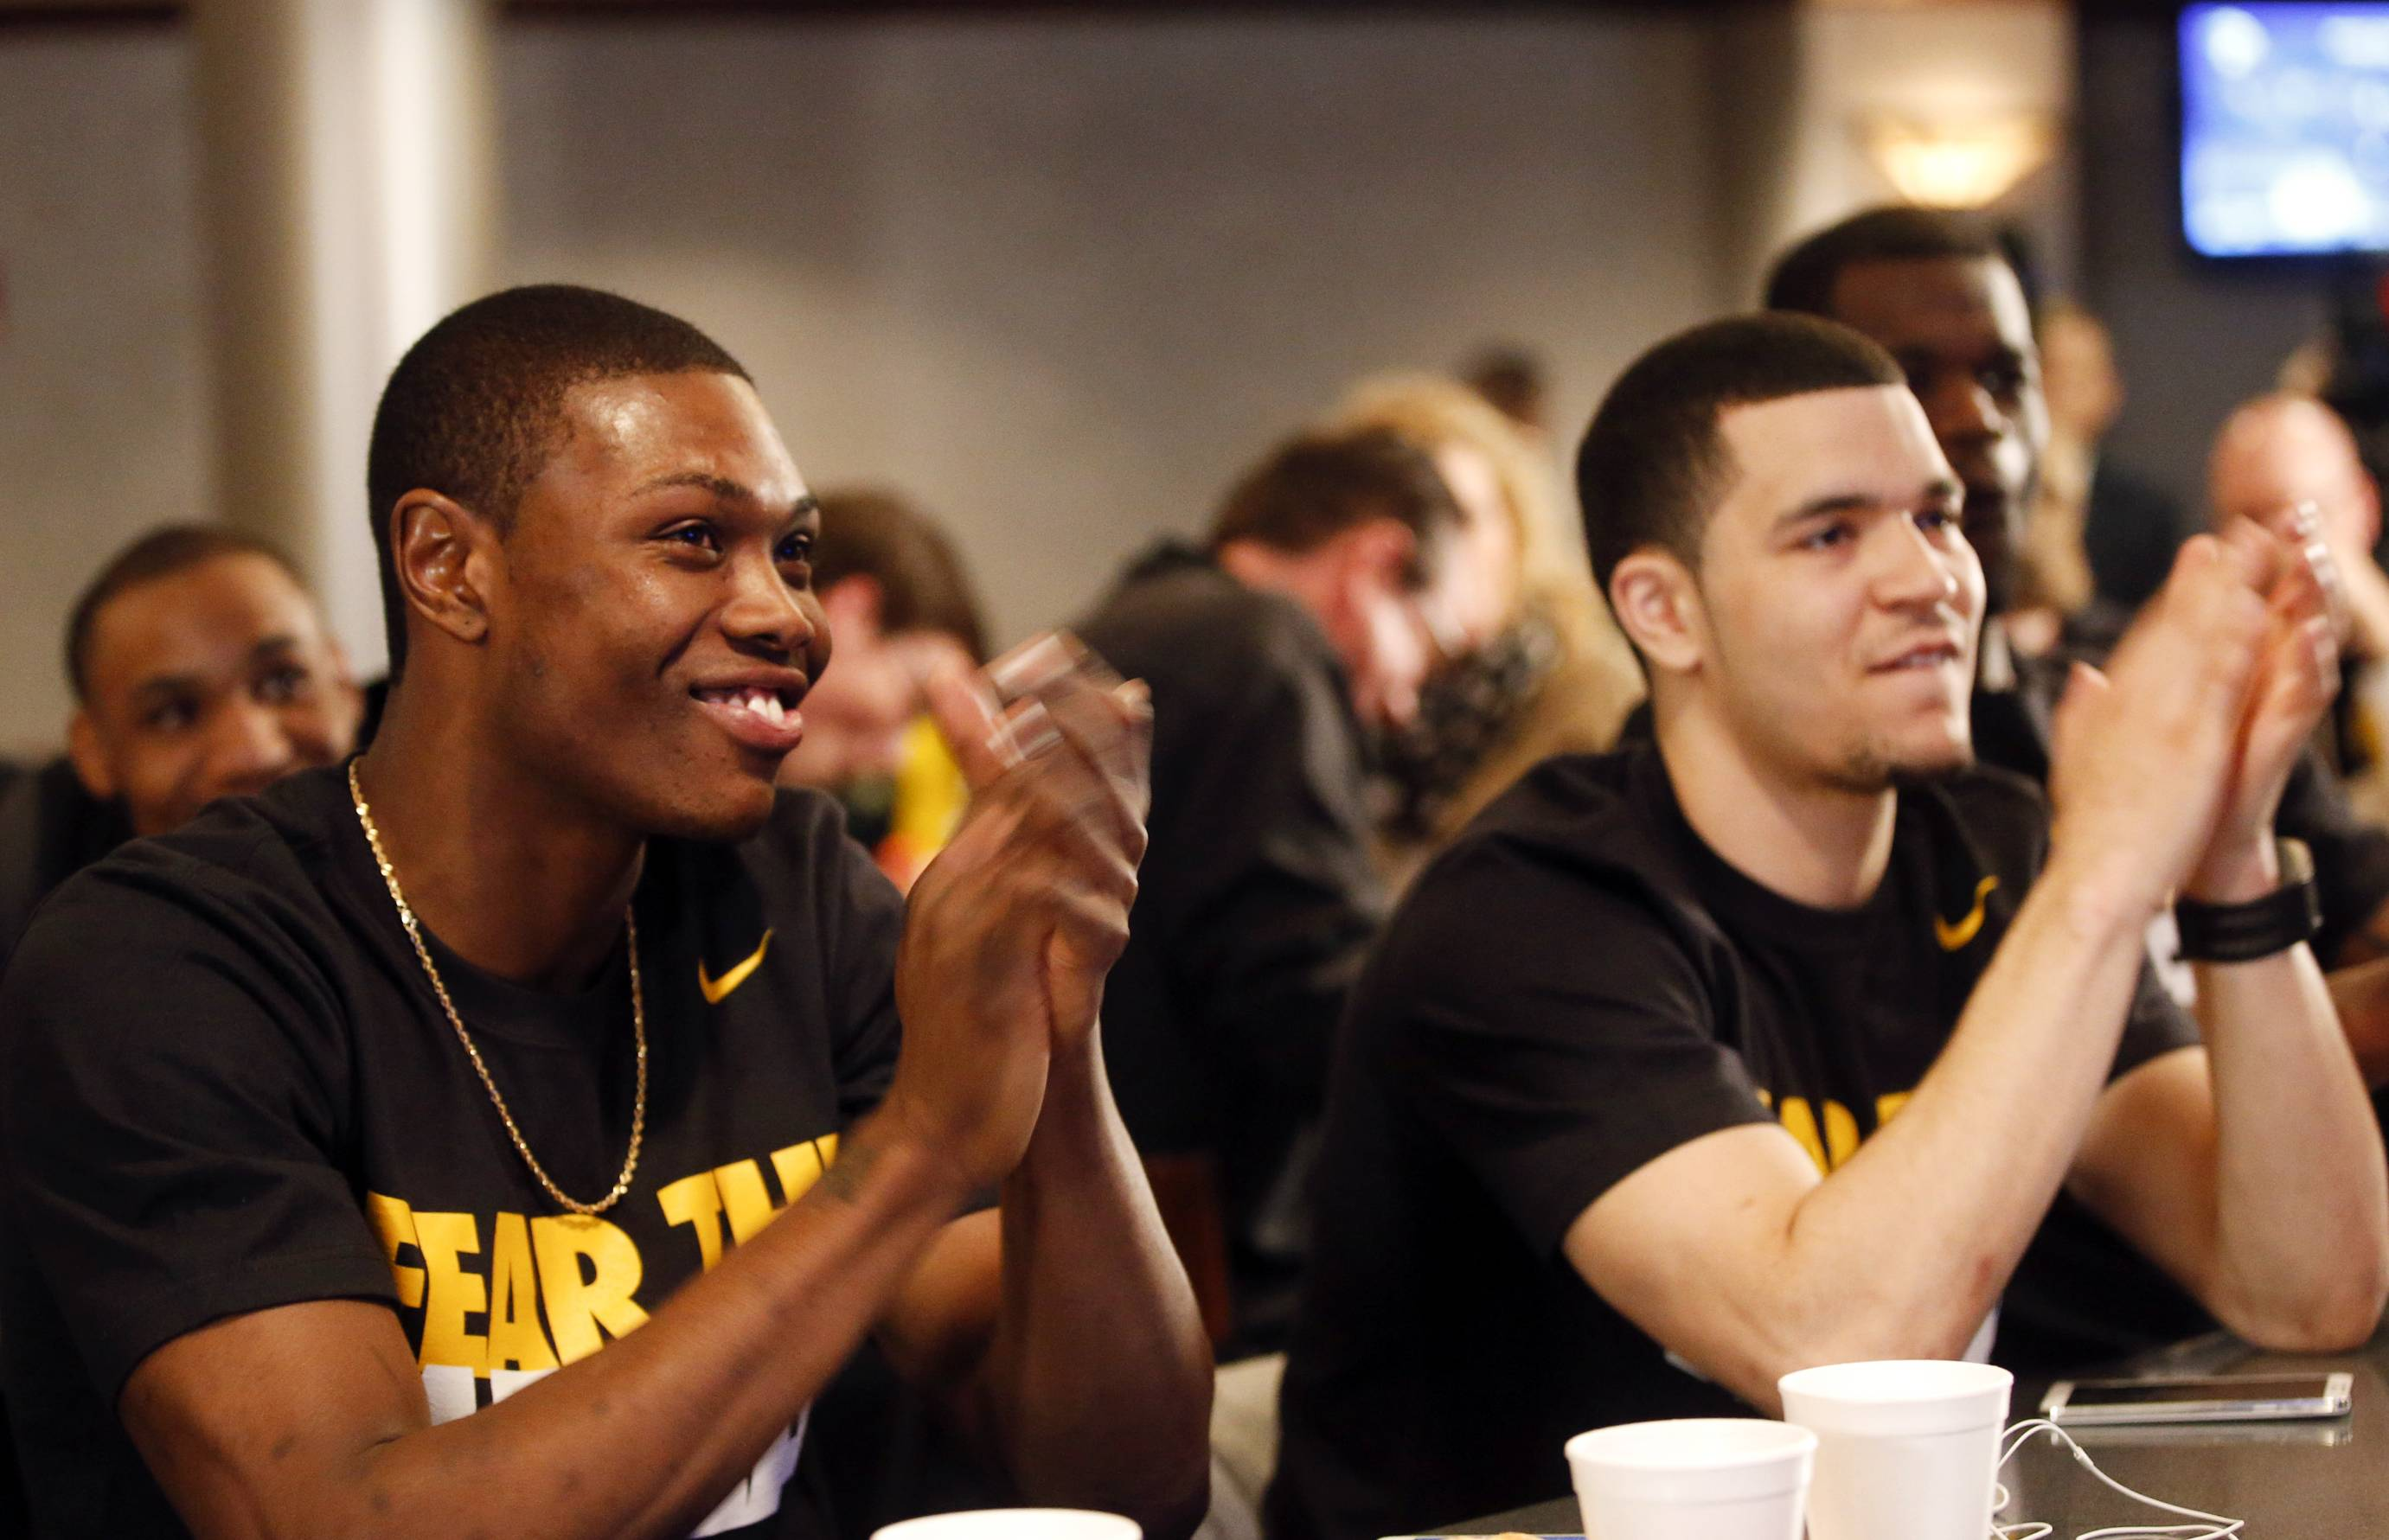 Wichita State's Cleanthony Early, left, and Fred VanVleet clap after the team earns a No. 1 seed during an NCAA college basketball Selection Sunday watch party, Sunday, March 16, 2014, in Wichita, Kan.